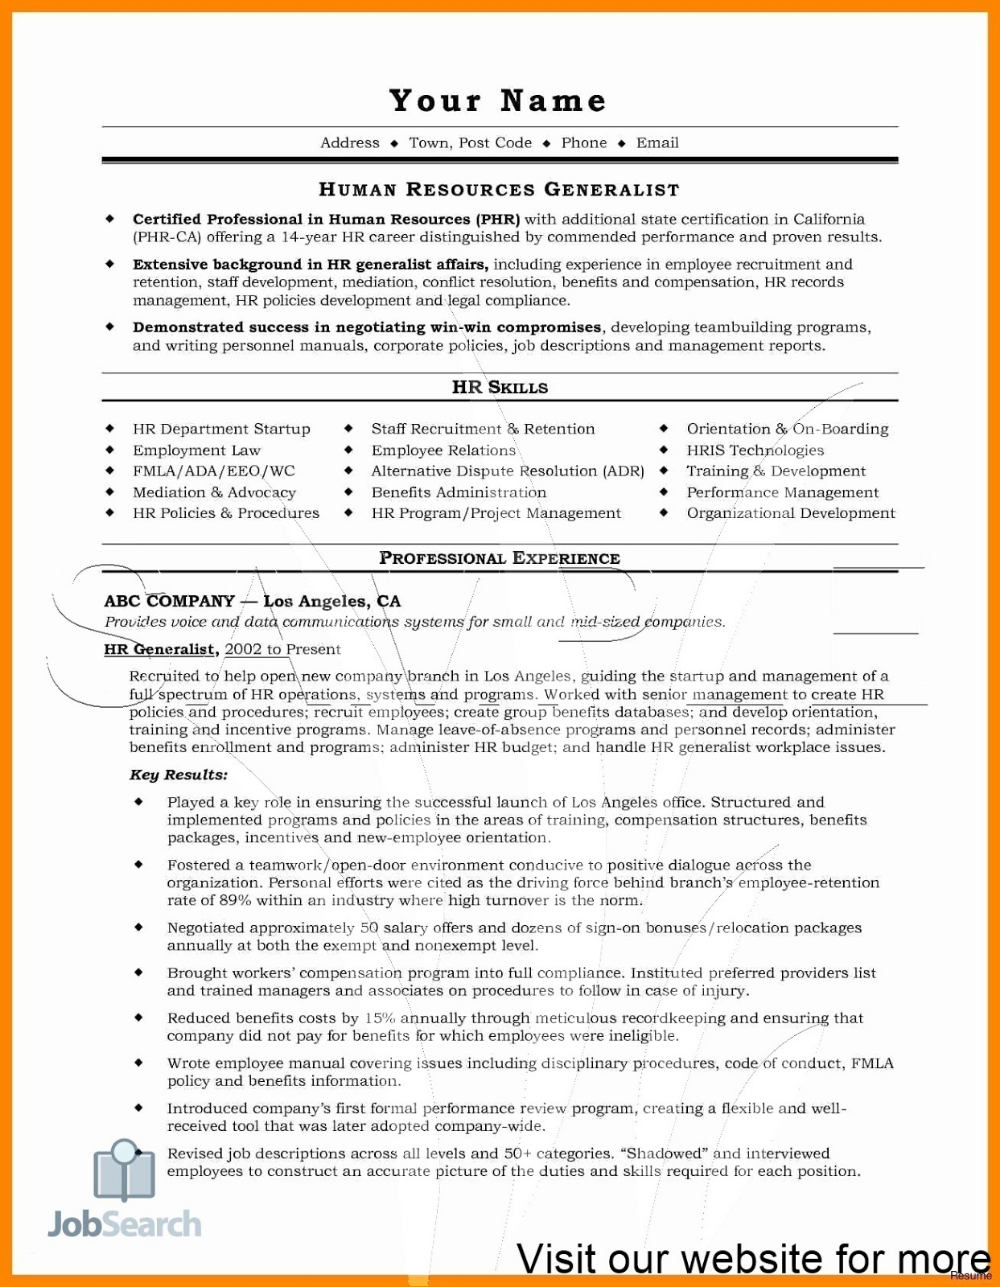 Job Resume Pdf 2020 Job Resume For Freshers In 2020 Resume Template Examples Free Cv Template Word Resume Profile Examples